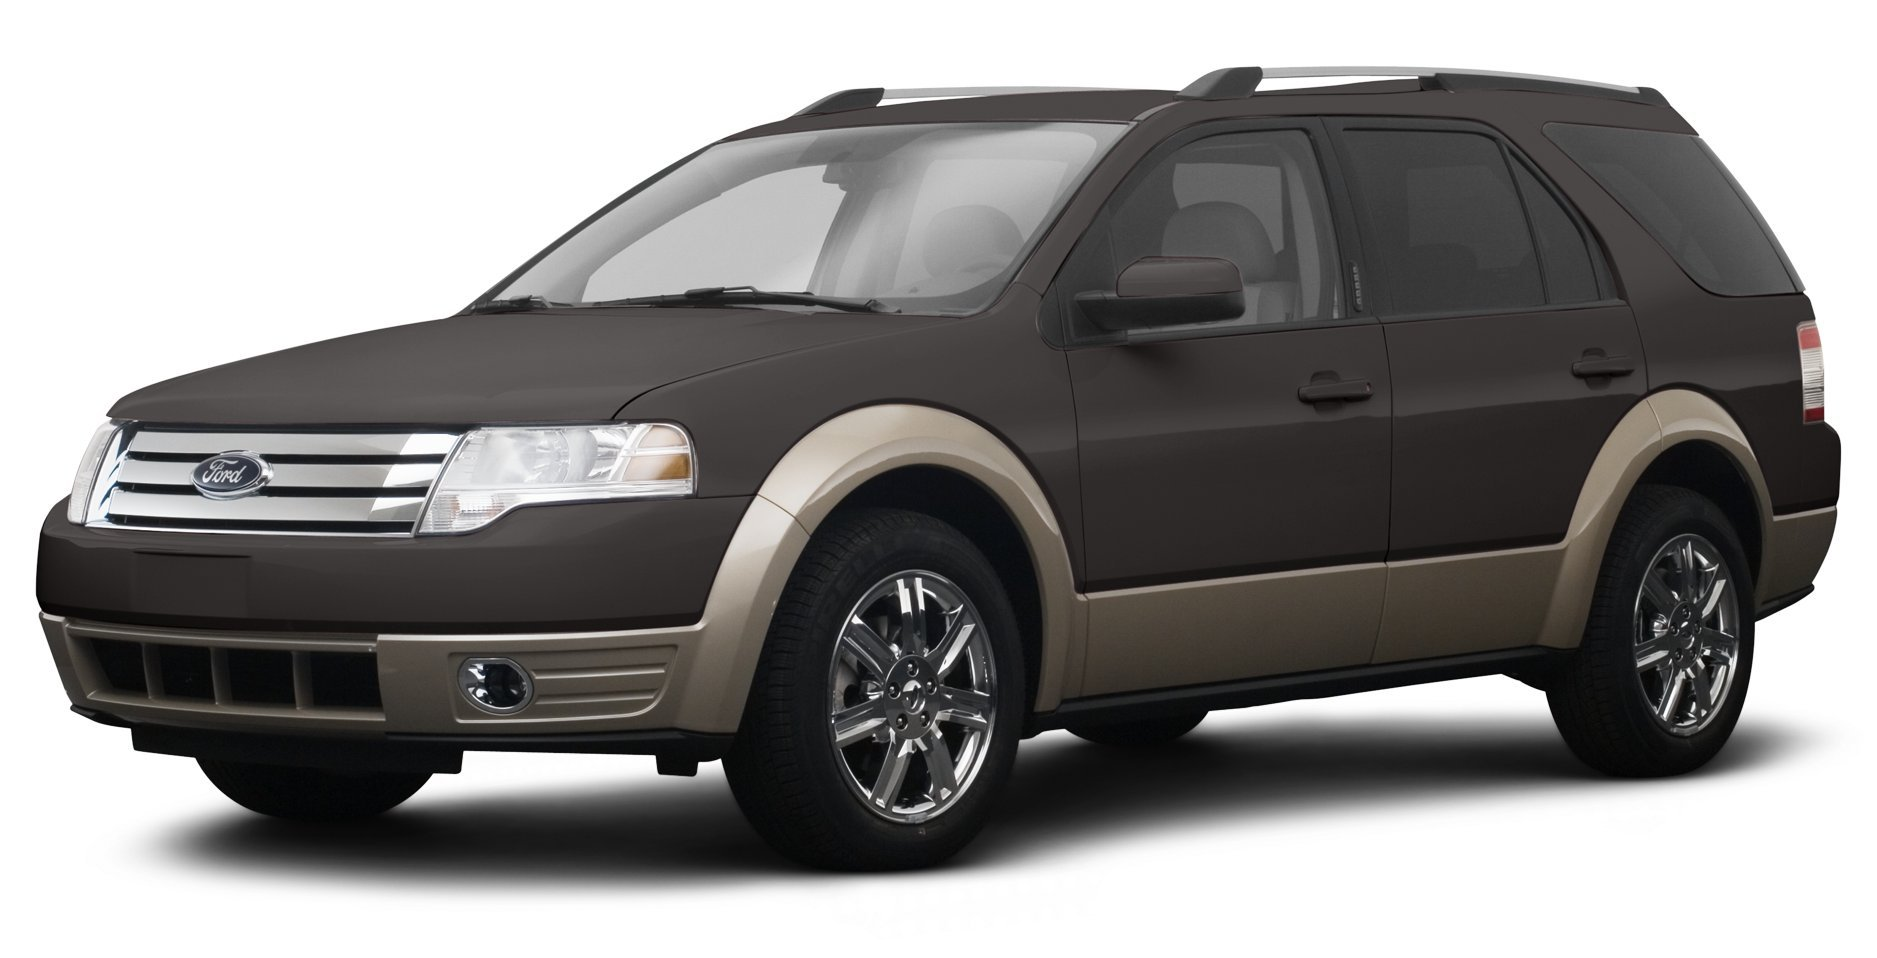 2008 ford taurus x eddie bauer 4 door wagon all wheel drive